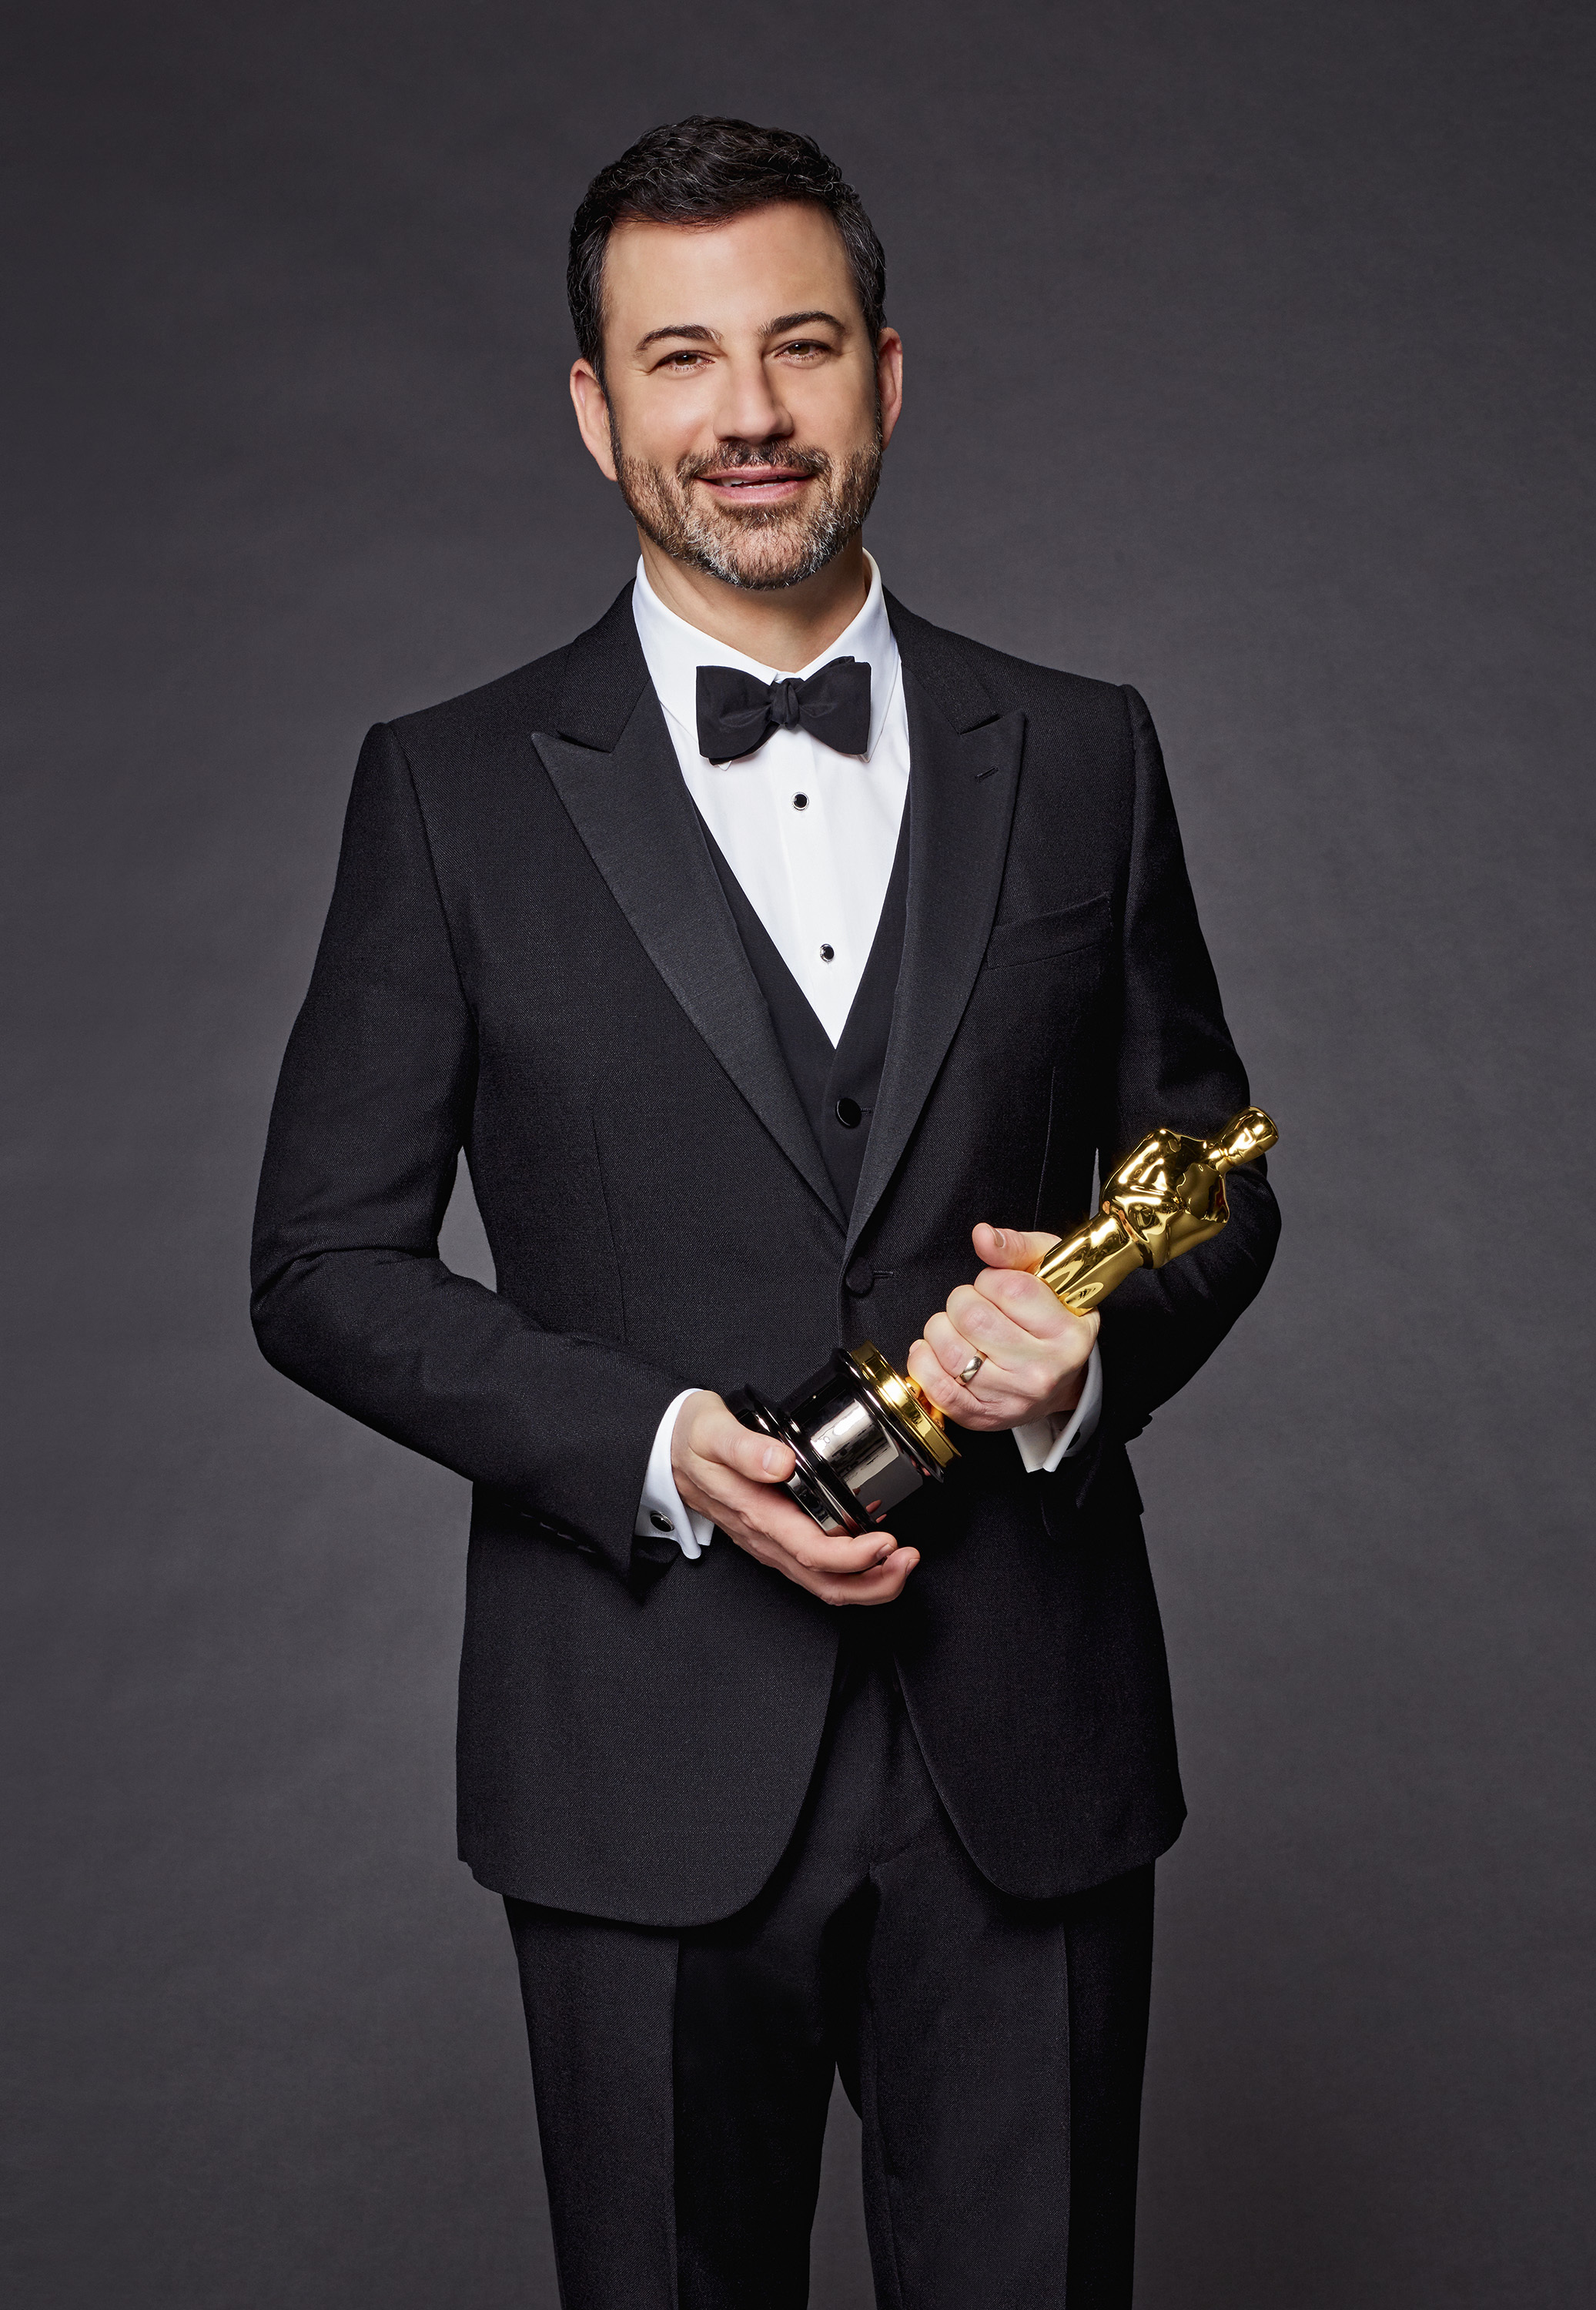 A promotional photo of Jimmy Kimmel ahead of the 2018 Academy Awards.